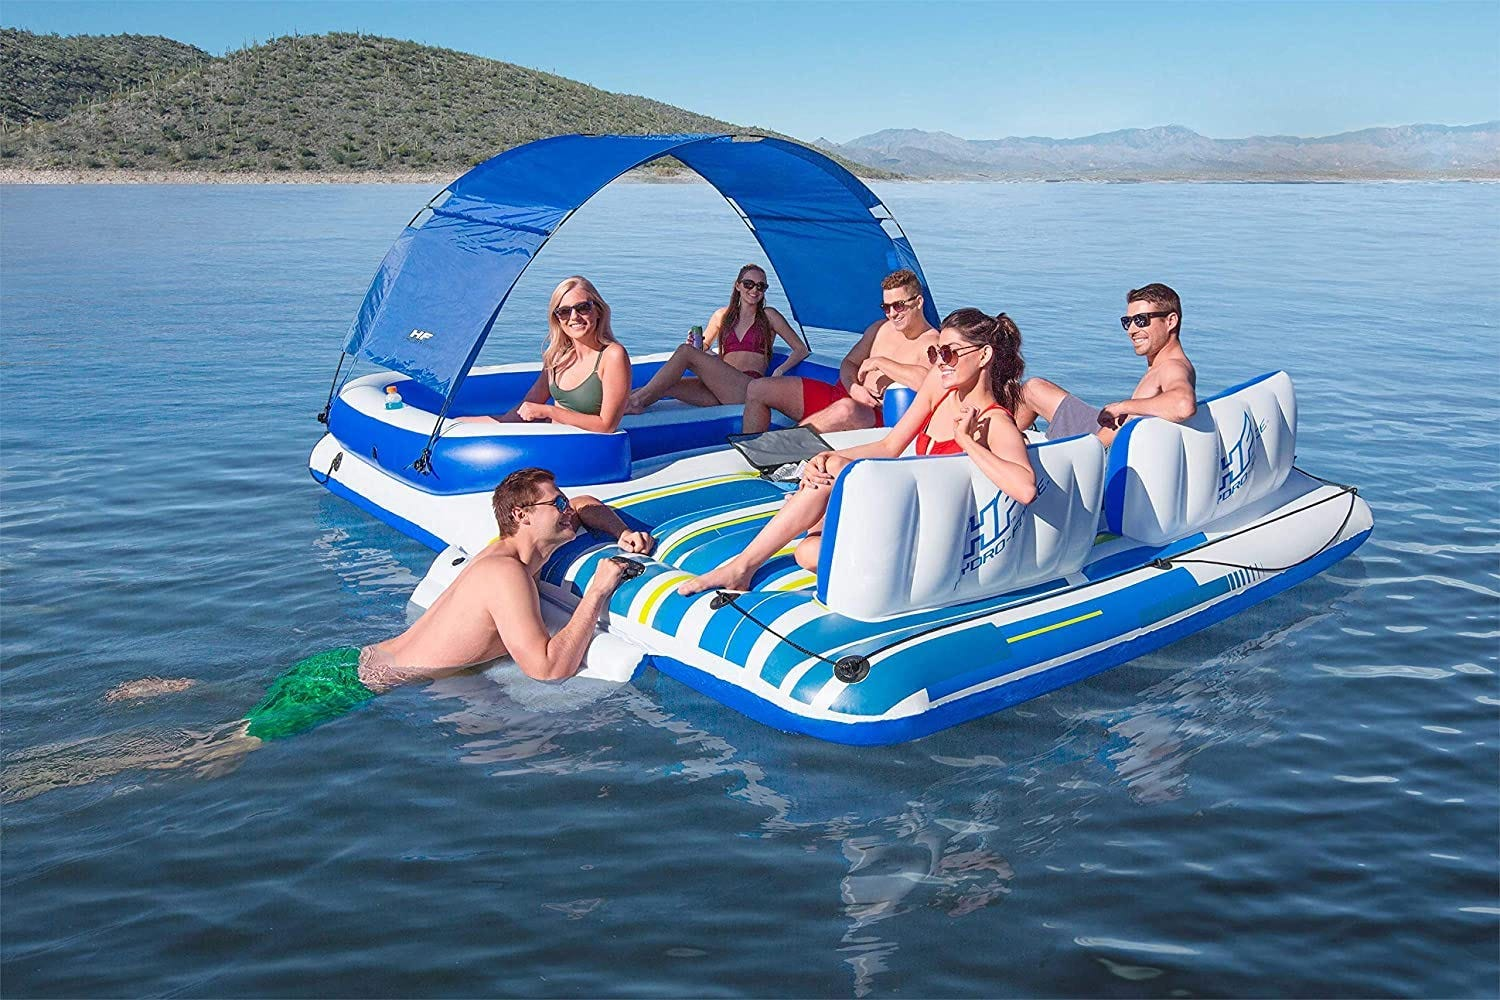 """A group of people lounging on an oversized floating """"island"""" float in a lake"""